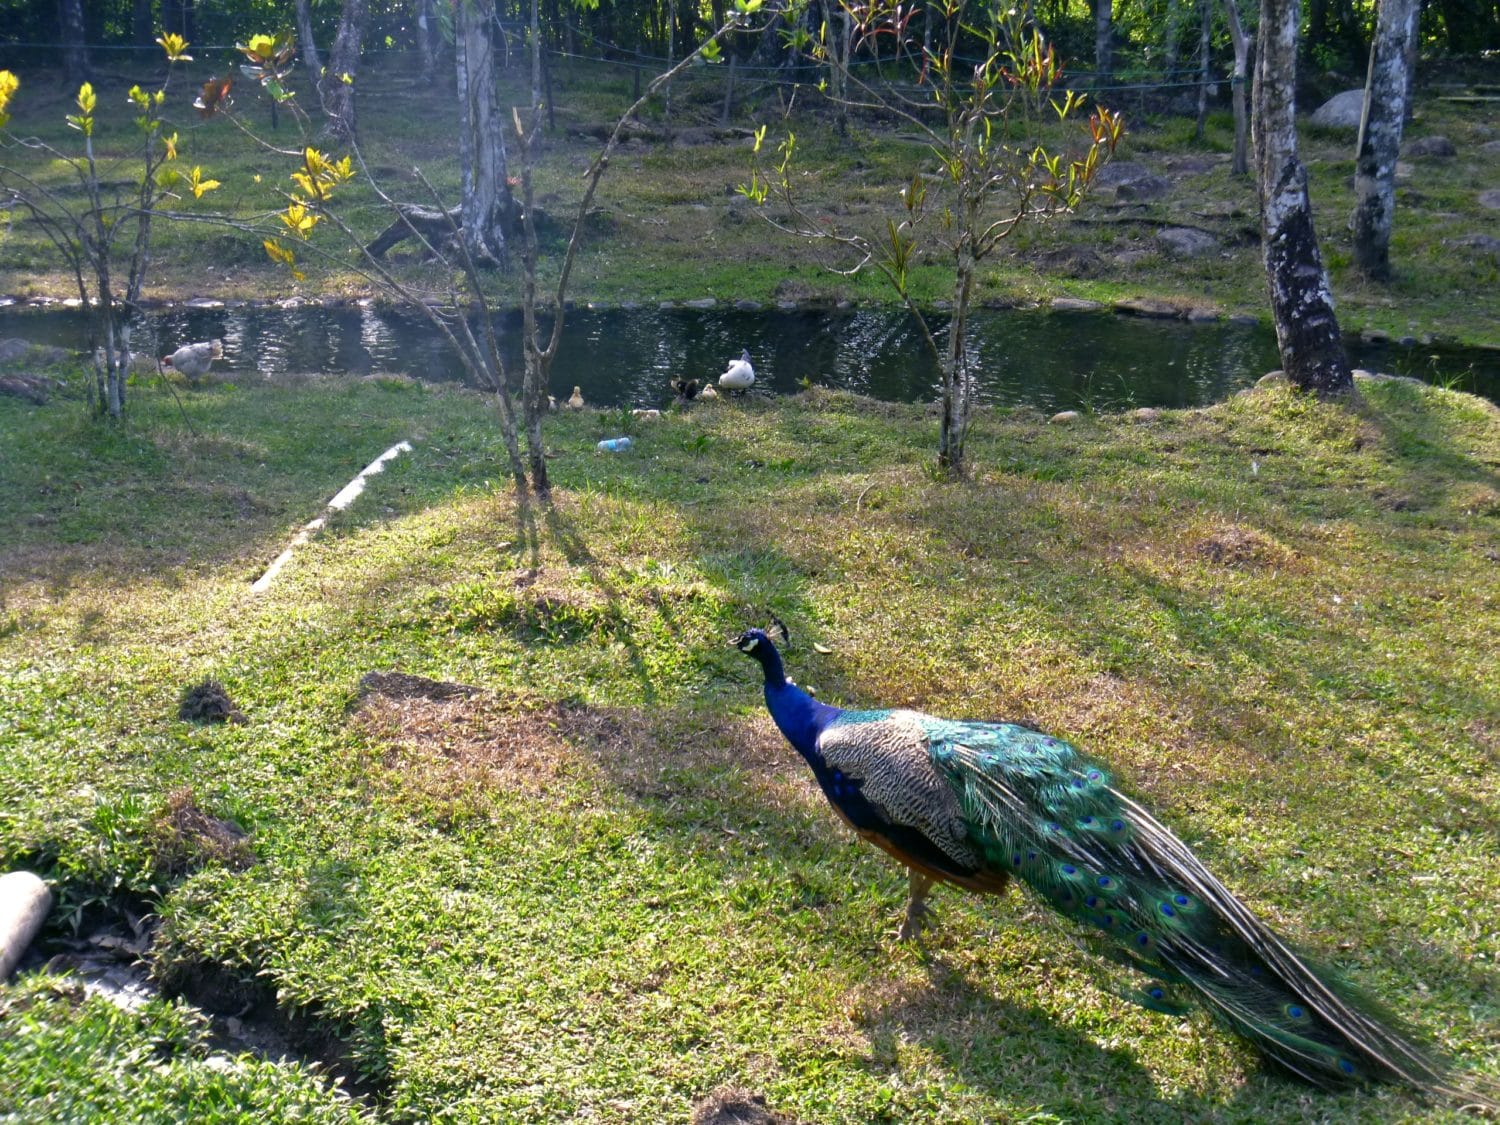 Peacock at Boquete Hot Springs